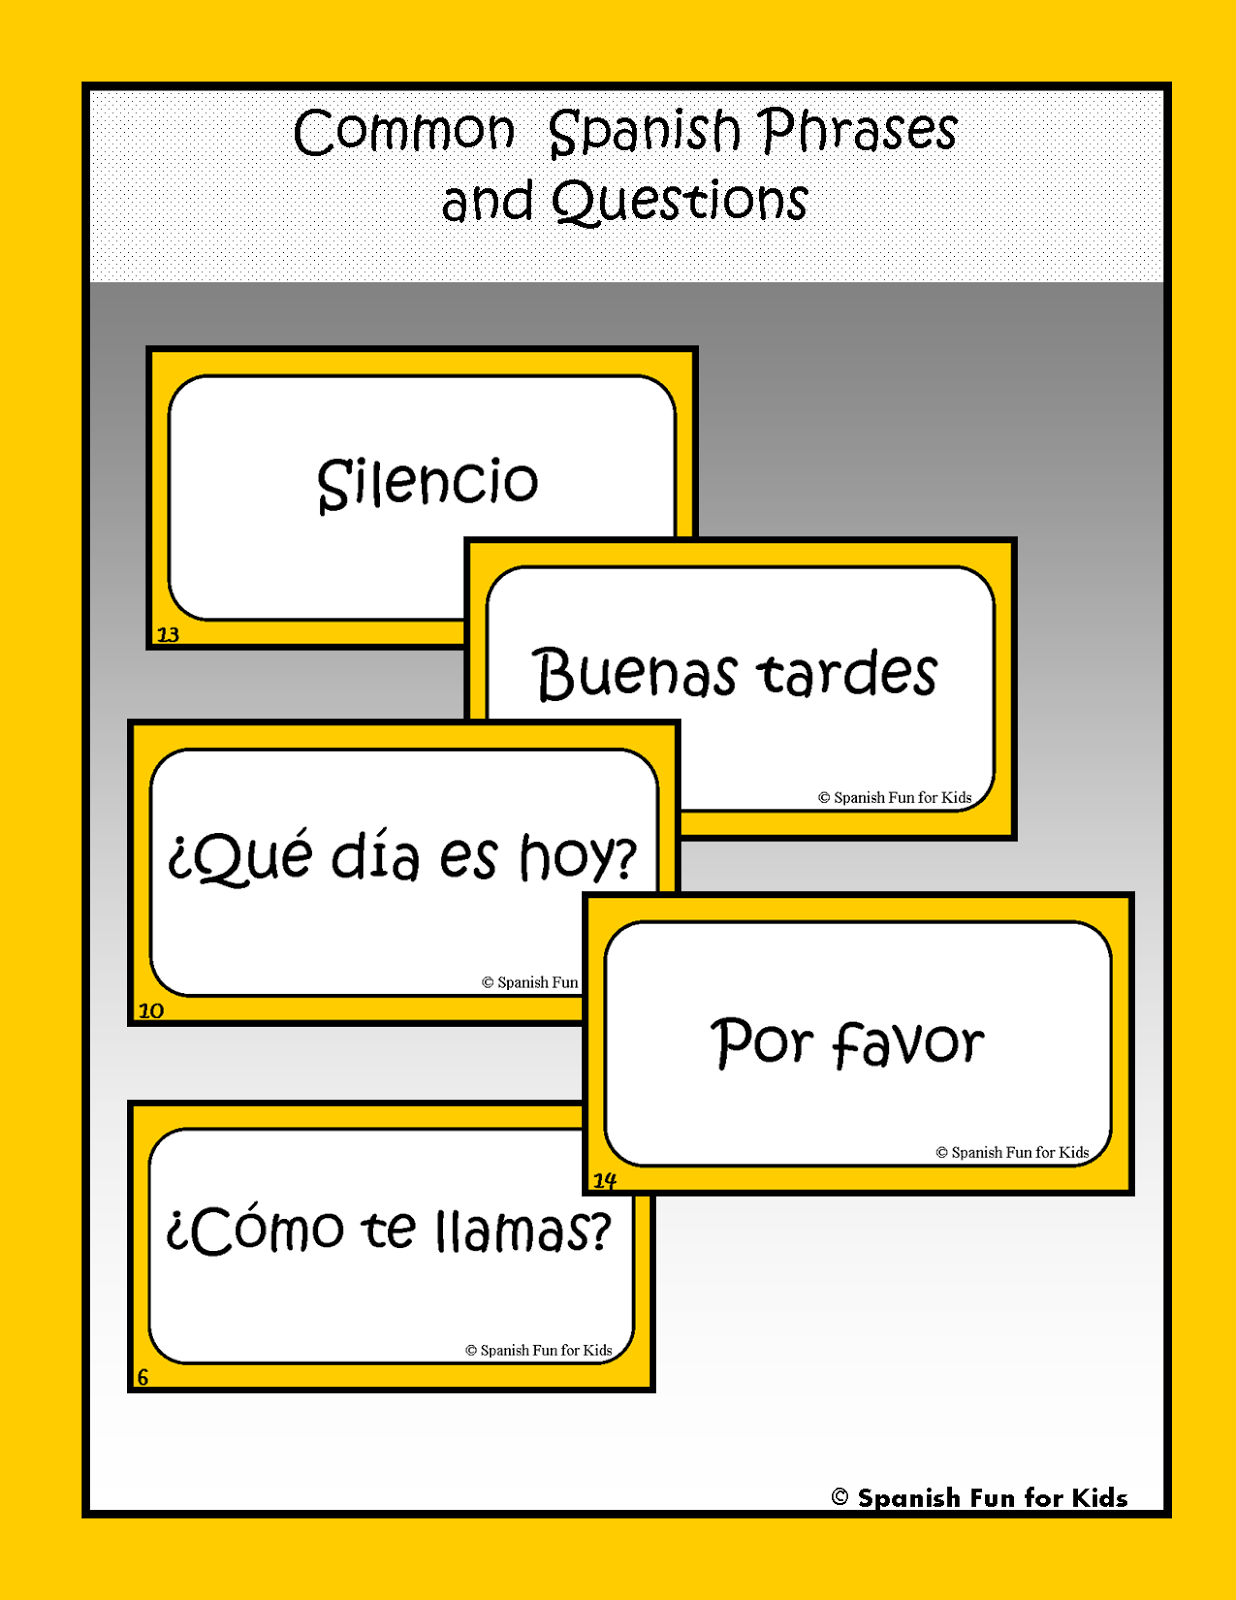 useful spanish expressions for essays 9 ridiculously useful spanish expressions tom bartel may 2, 2012 i first lived in spain, and learned the language, more than 30 years ago.